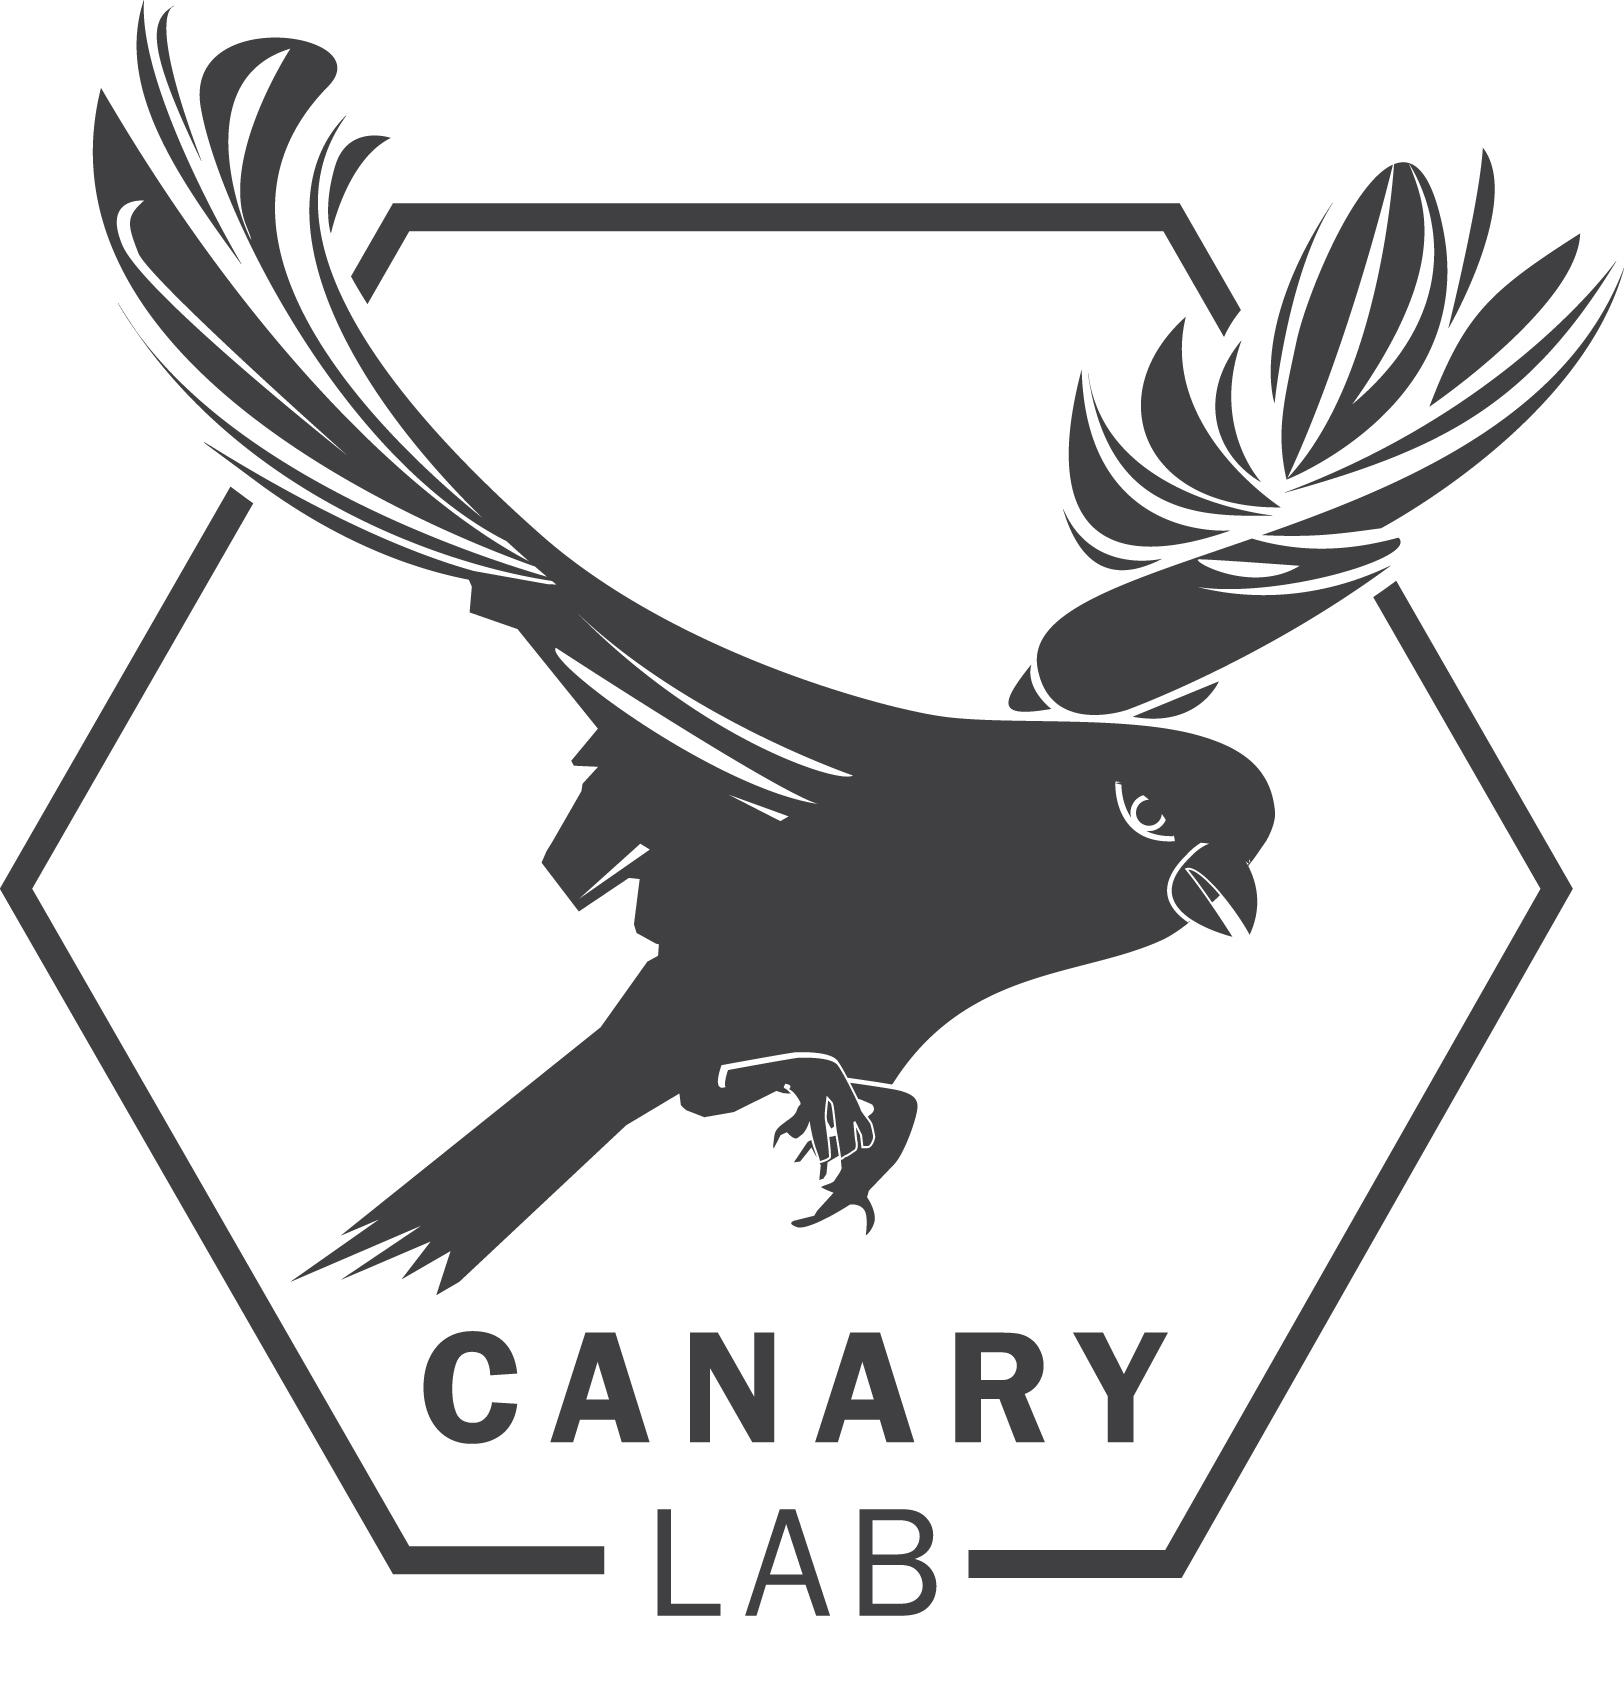 the-canary-lab-at-syracuse-university